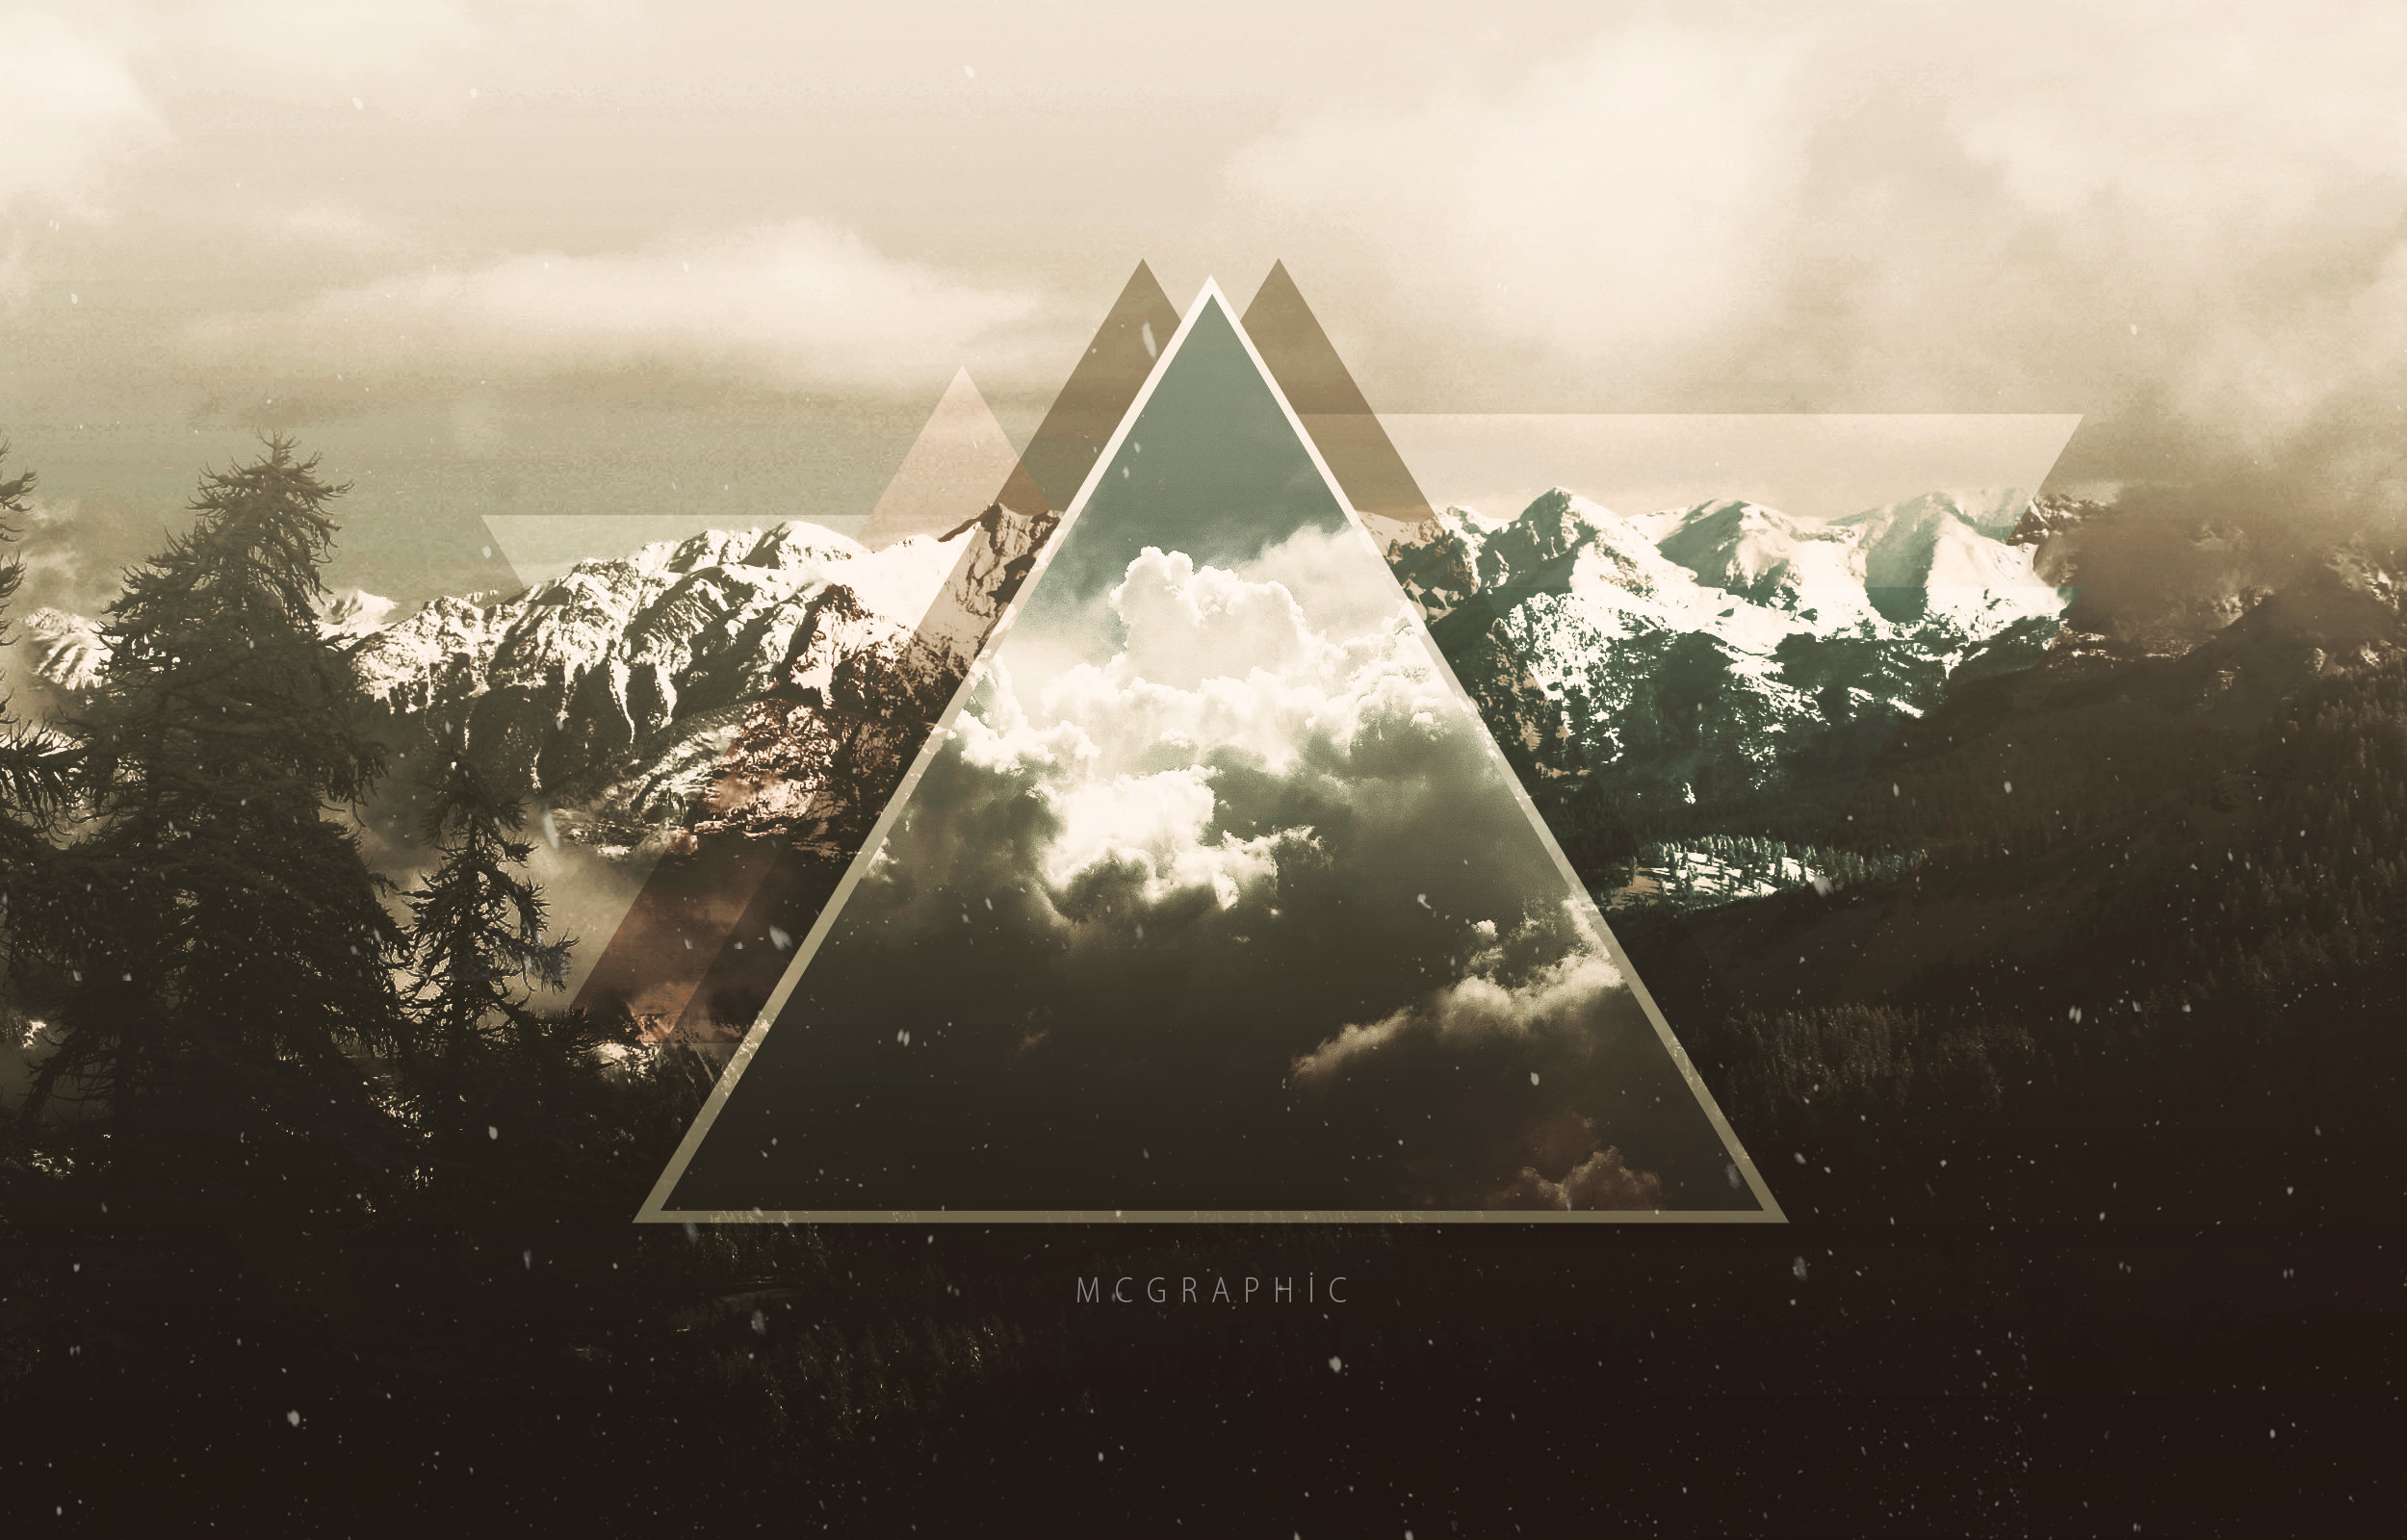 Best Wallpaper Mountain Hipster - f12f06f79c0b8d6b3ef33cd2afaf4eca  Collection_61905.png